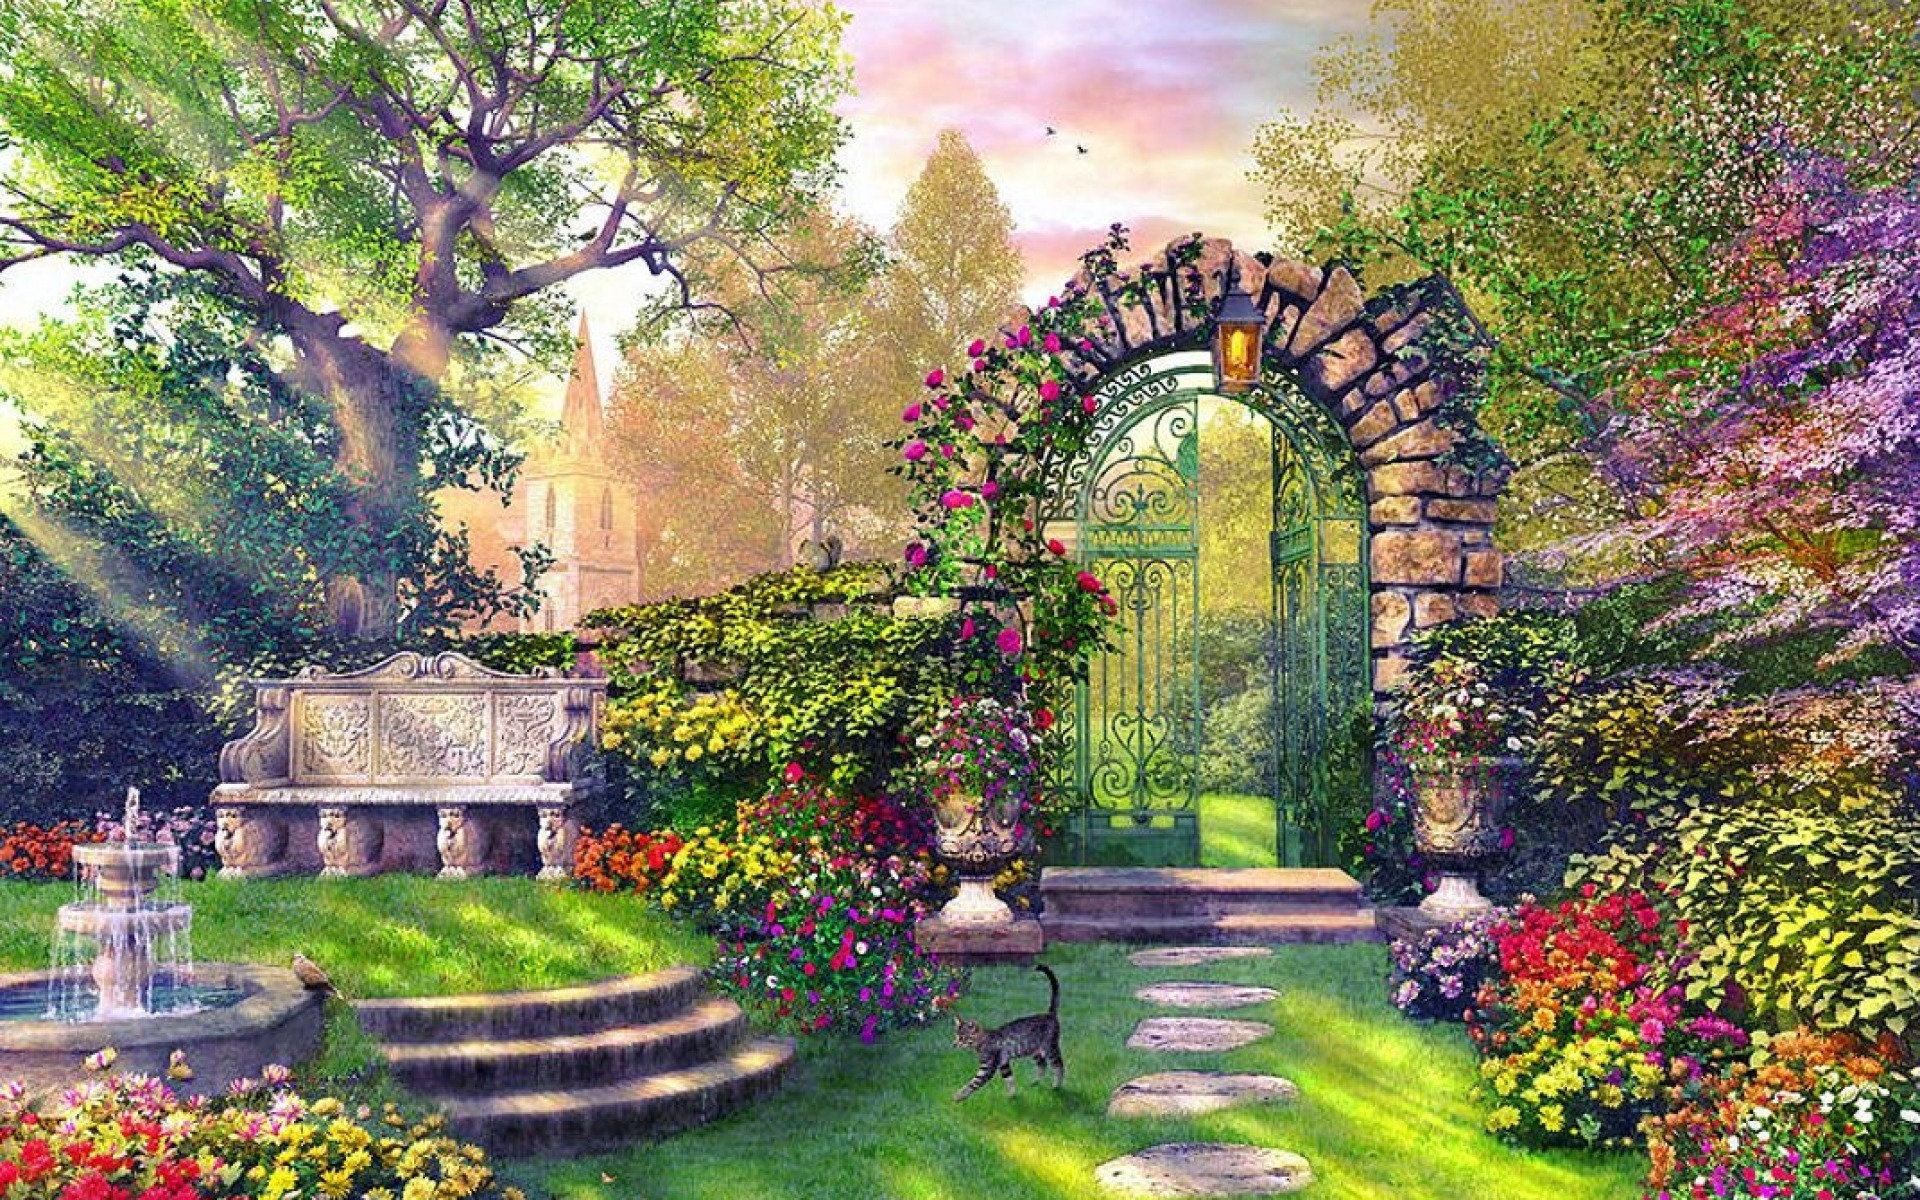 Ordinaire Image: Enchanting Garden Wallpapers And Stock Photos. «